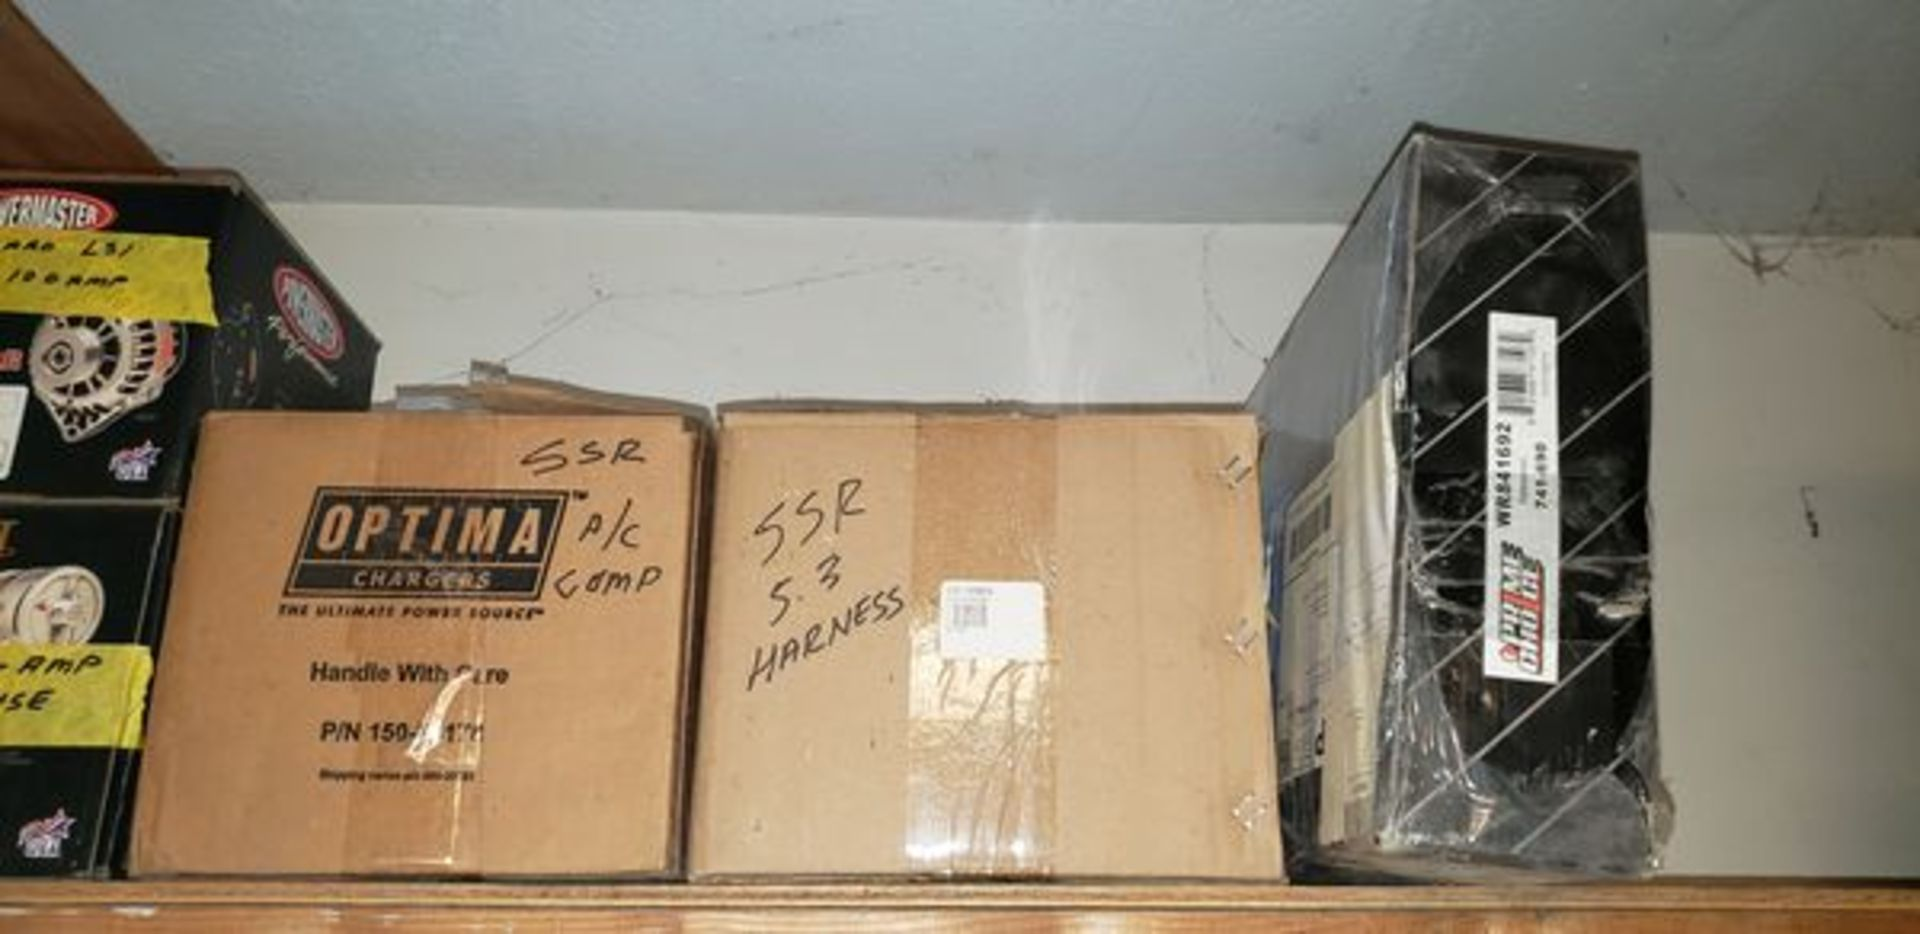 LOT OF ASSORTED CAR PARTS ON 2 SHELVES - Image 3 of 11